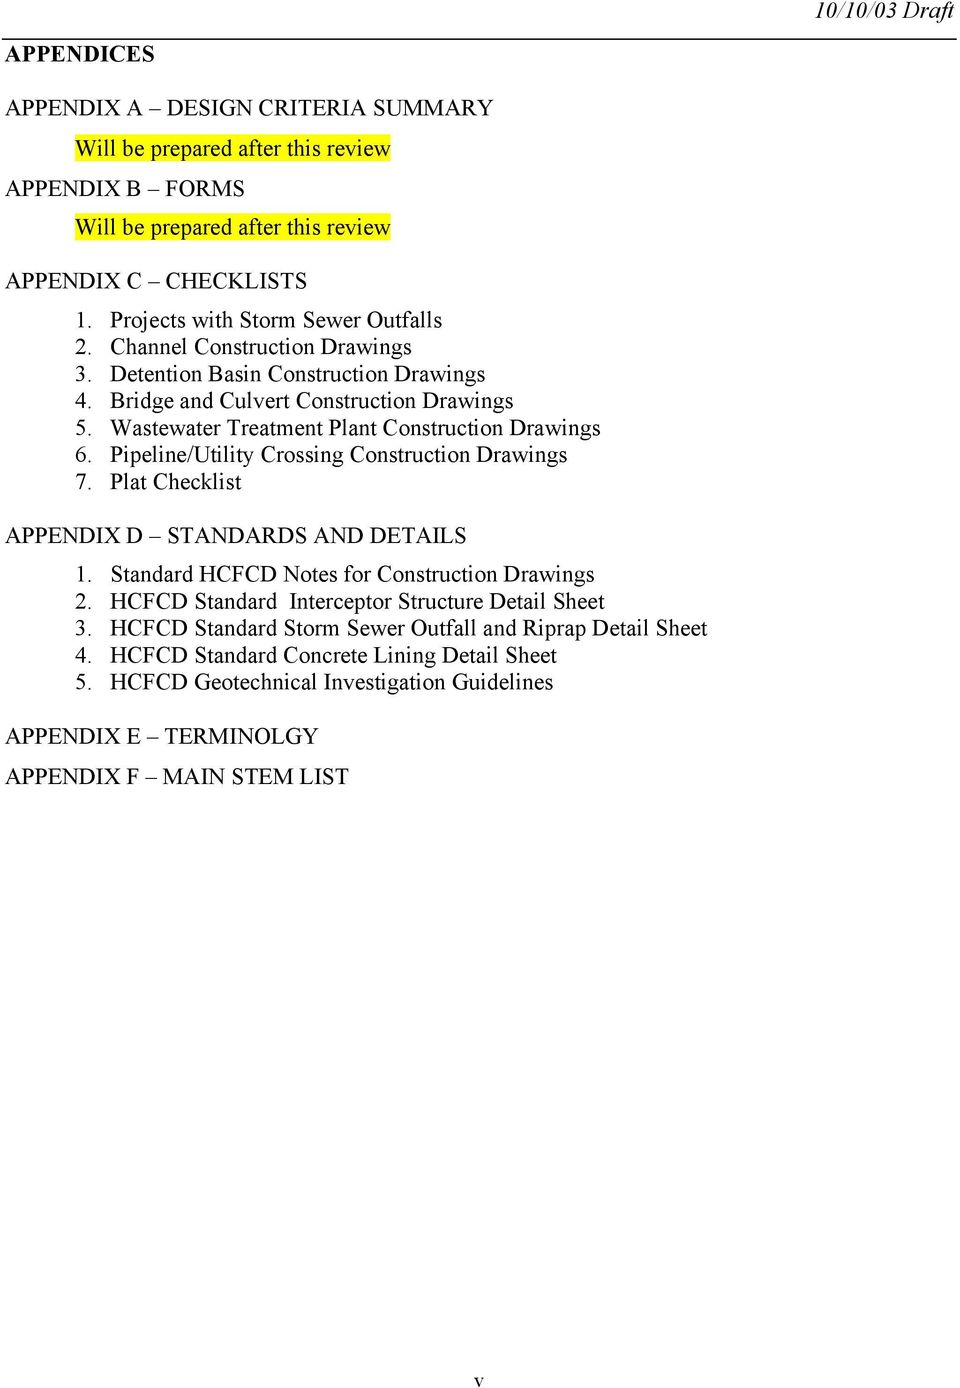 Harris County Flood Control District  Policy, Criteria, and